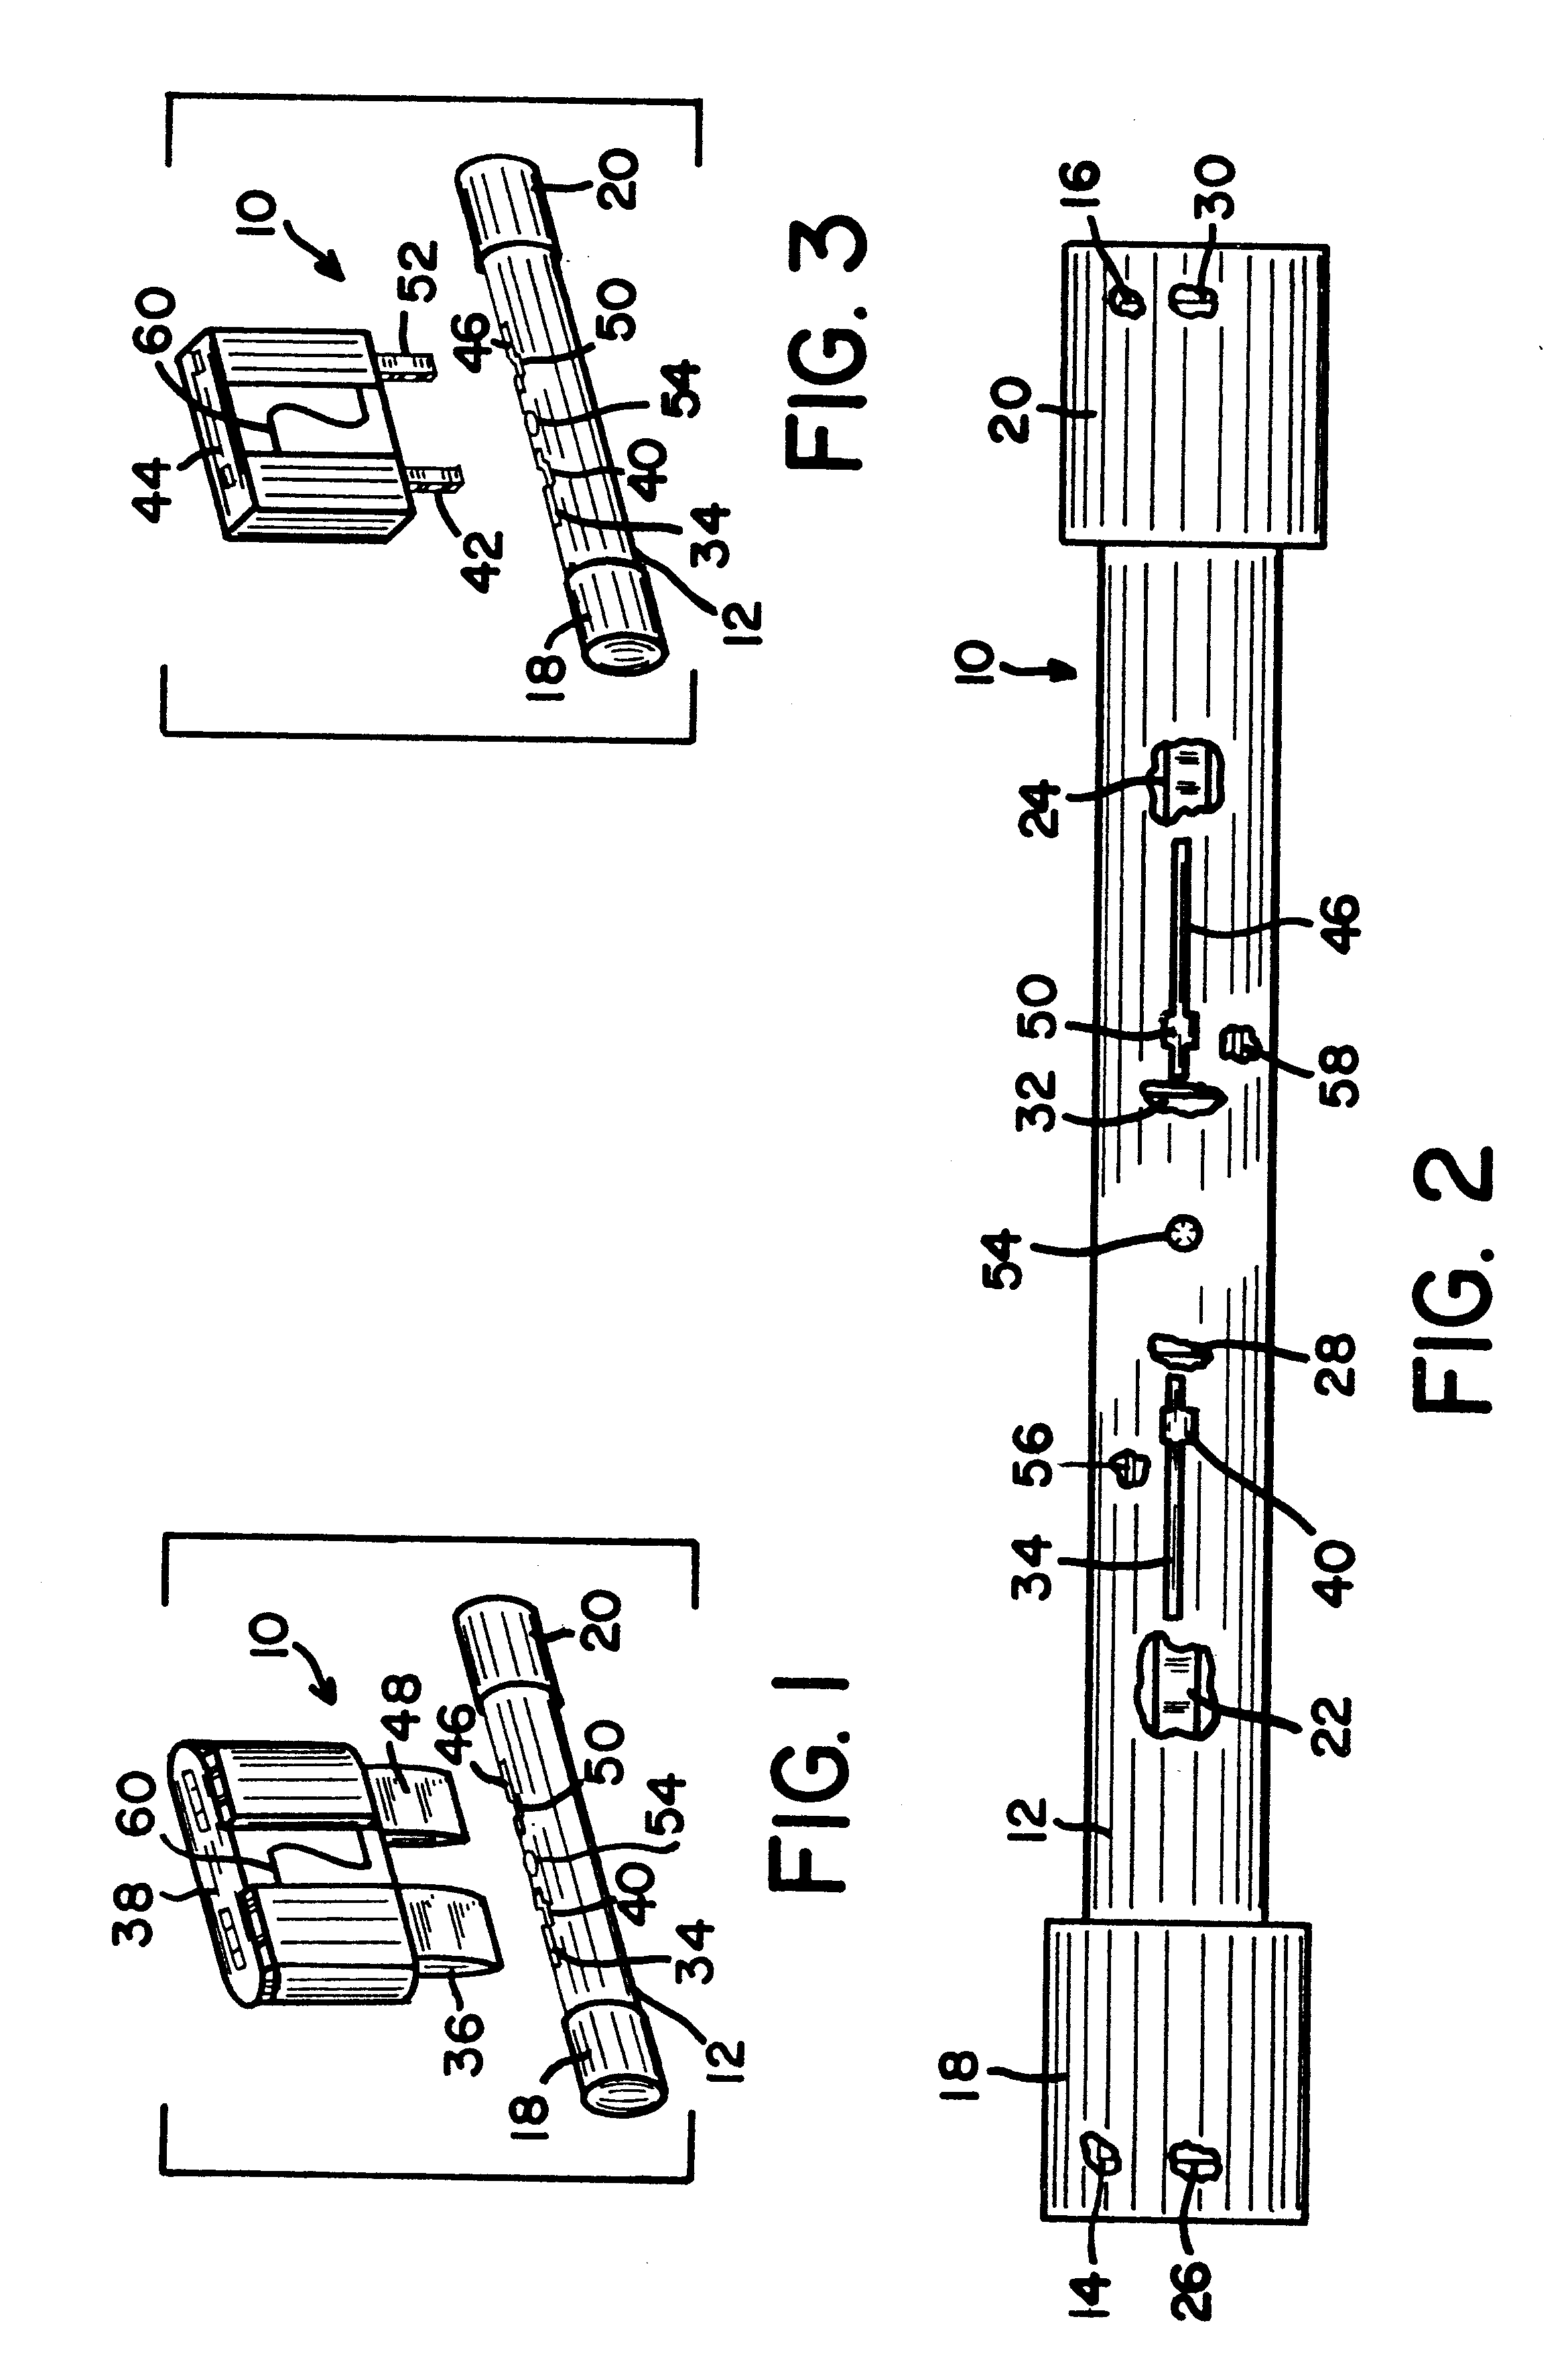 patent us6168471 - ferrule-to-blade fuse adapter with a blown fuse indicator